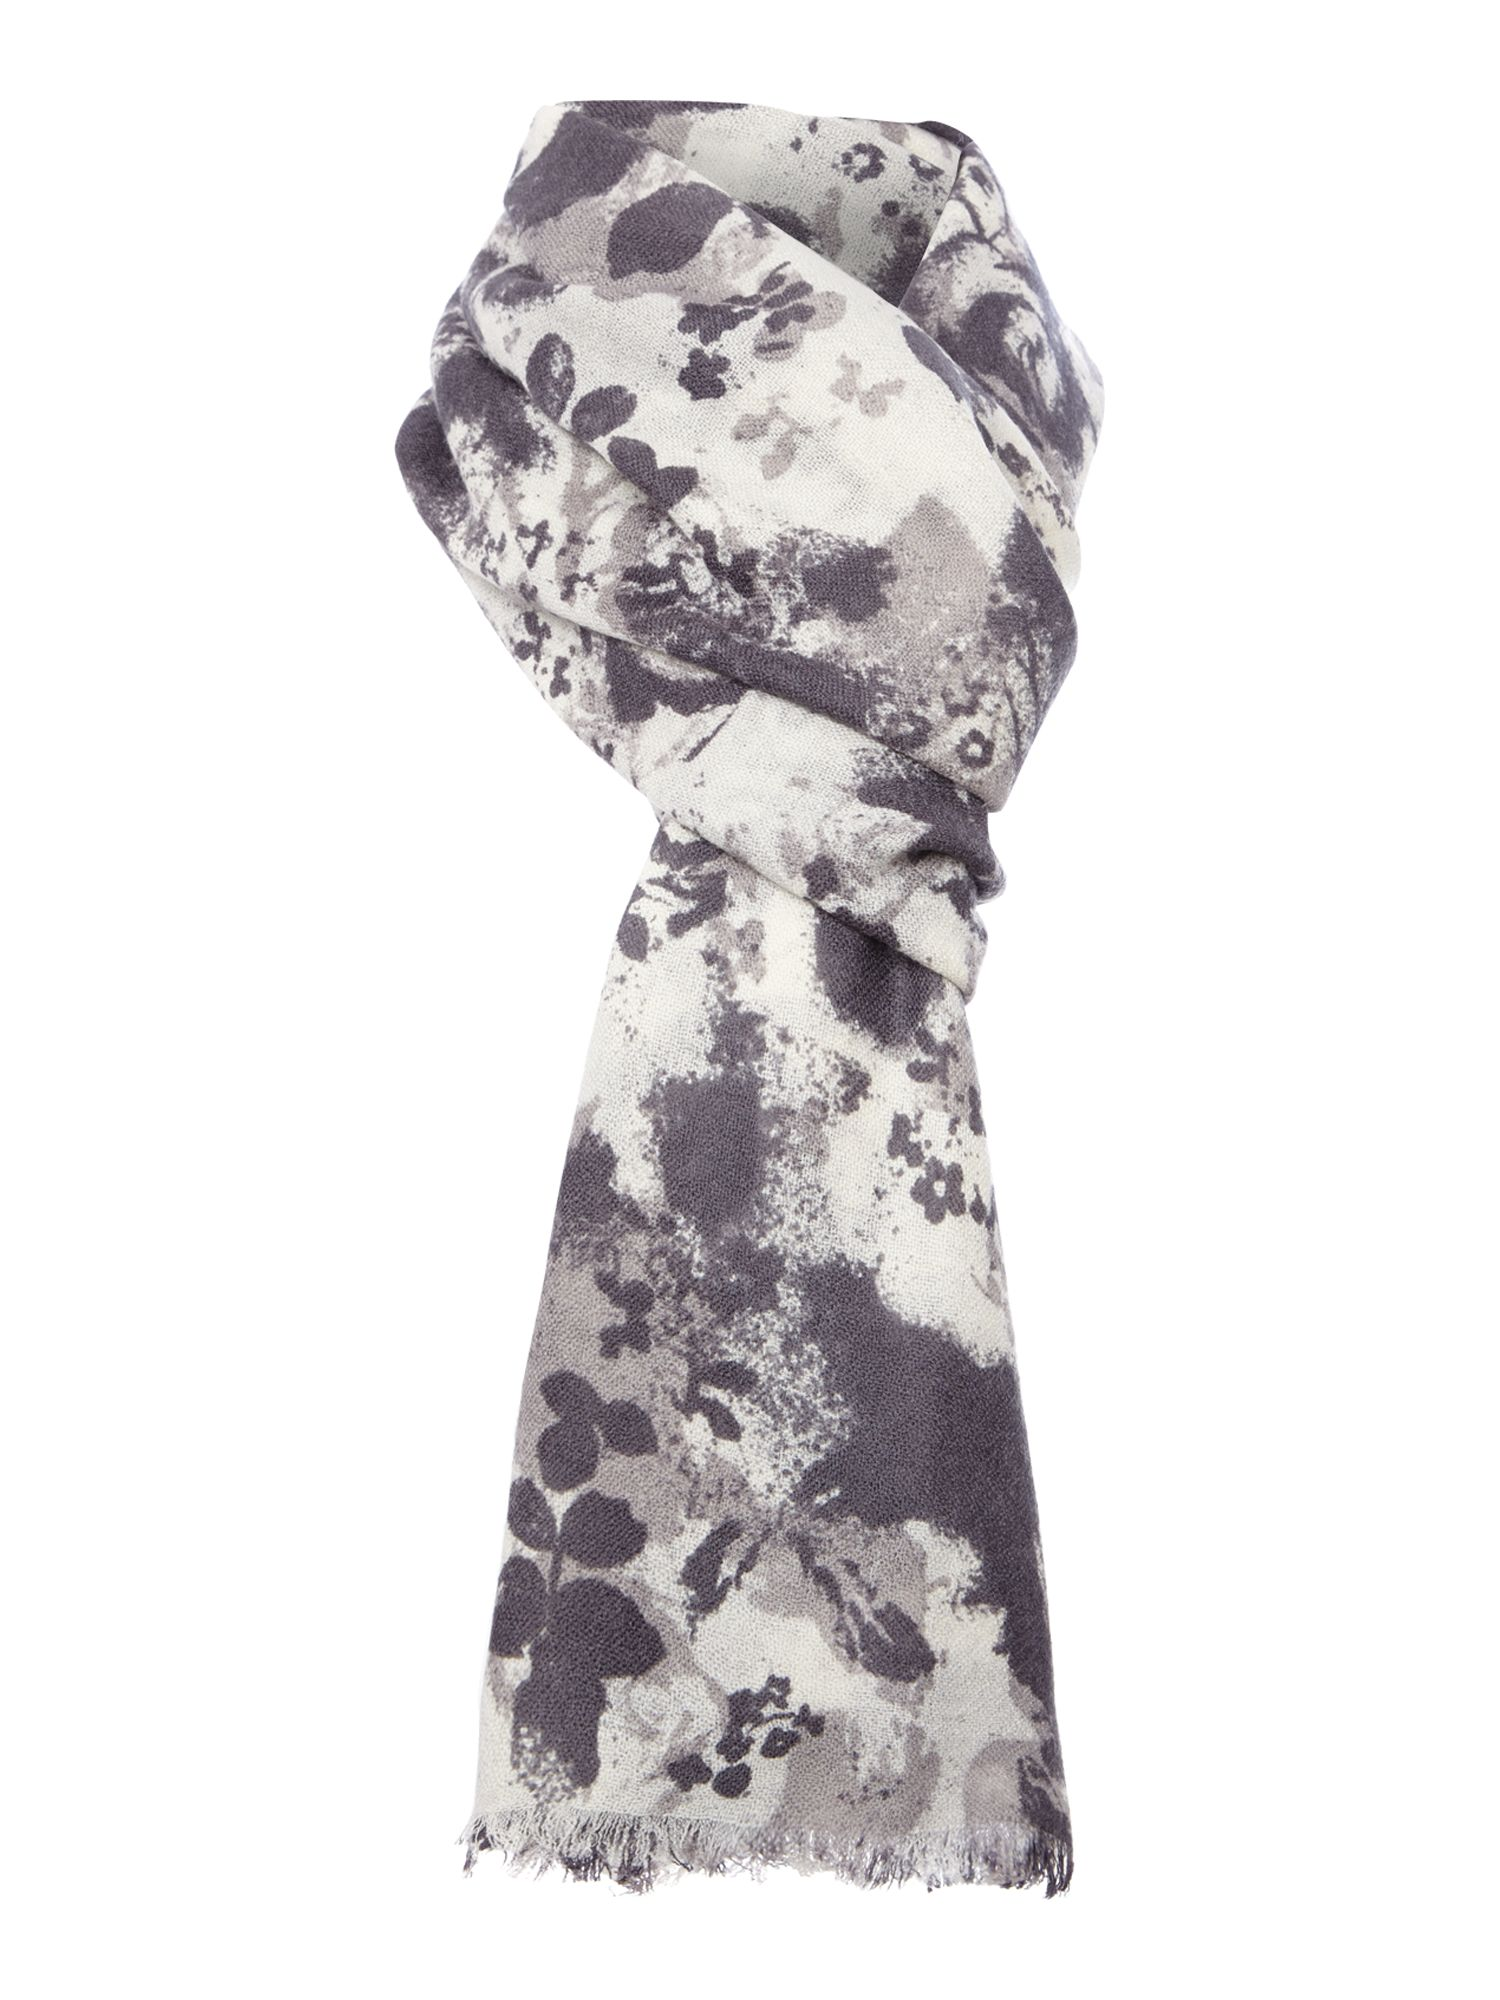 Graffiti rose wool scarf